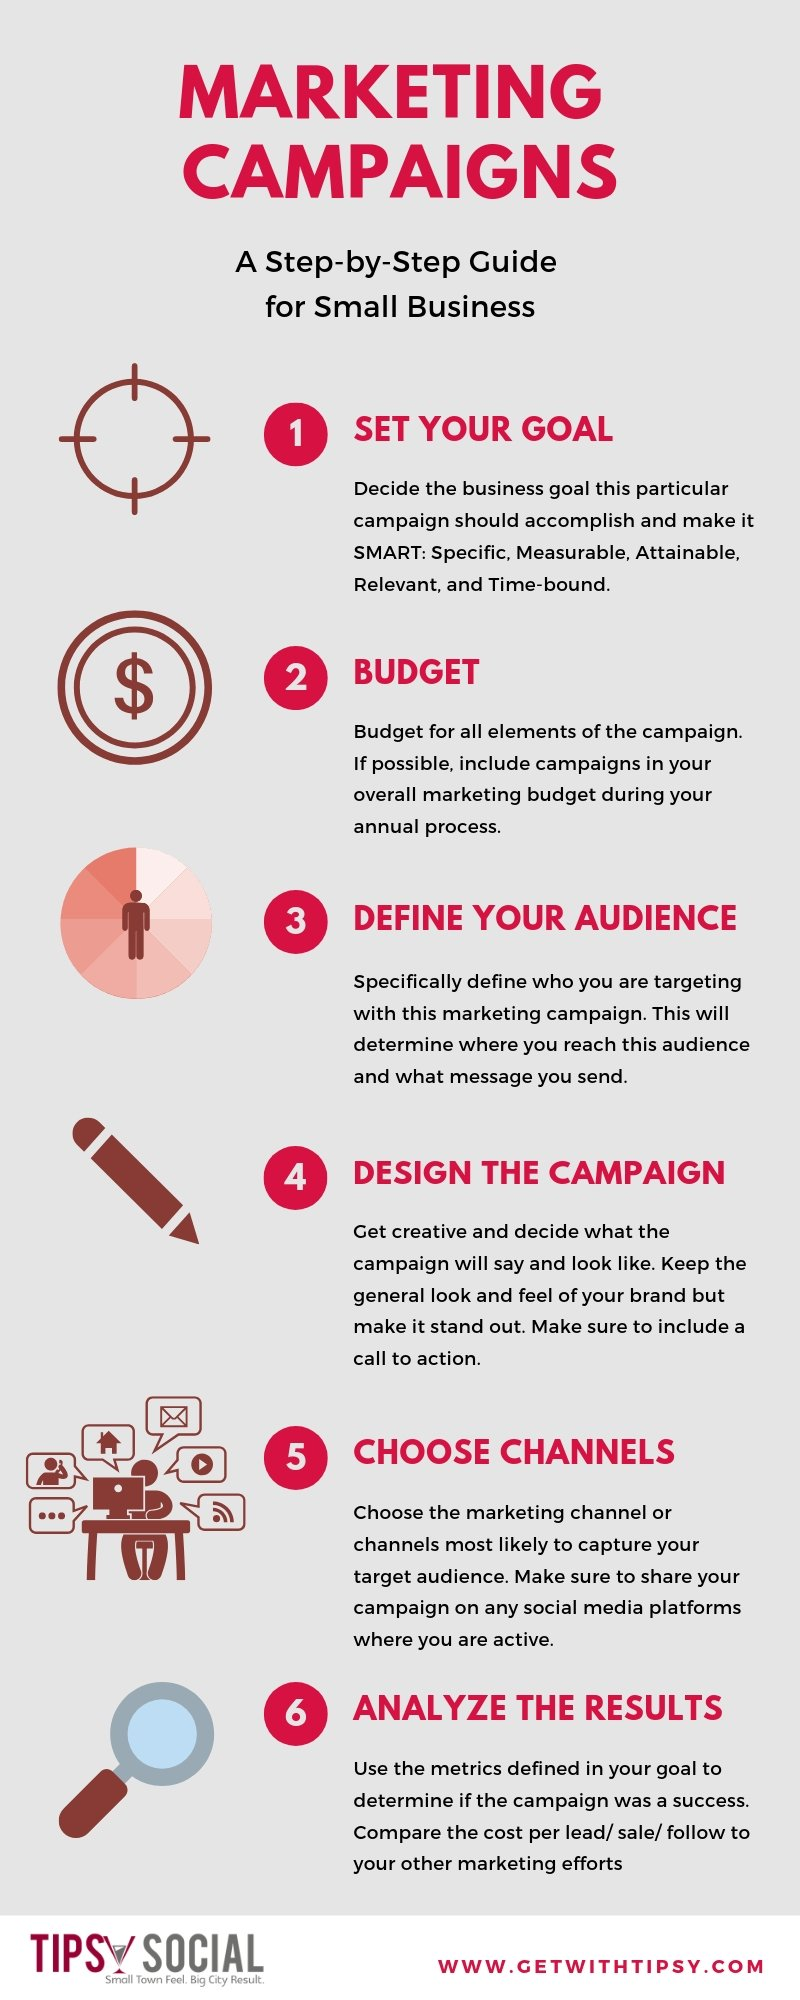 Marketing Campaigns for Small Business Infographic